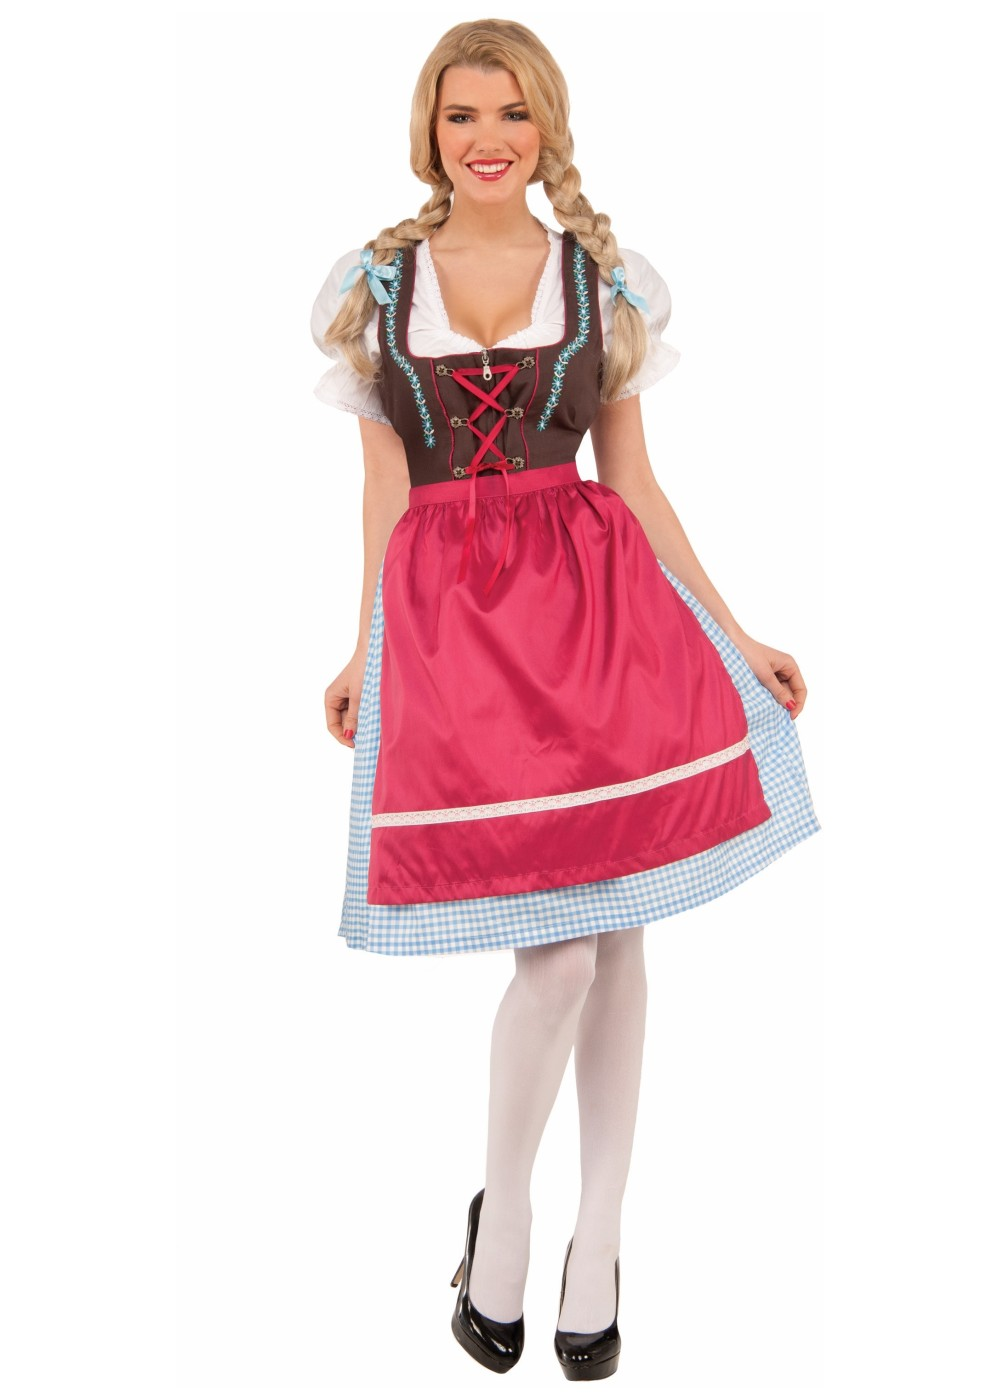 0ae9bbe9b Womens Bavarian Dress Costume - International Costumes